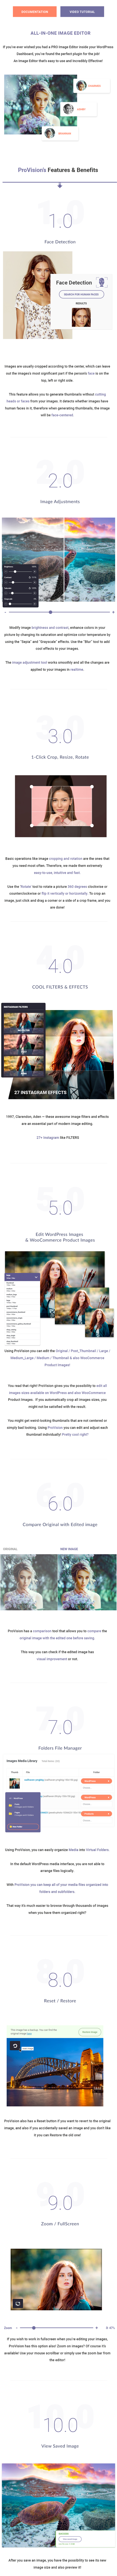 ProVision Image Editor for WordPress / WooCommerce with Folders File Manager - 1